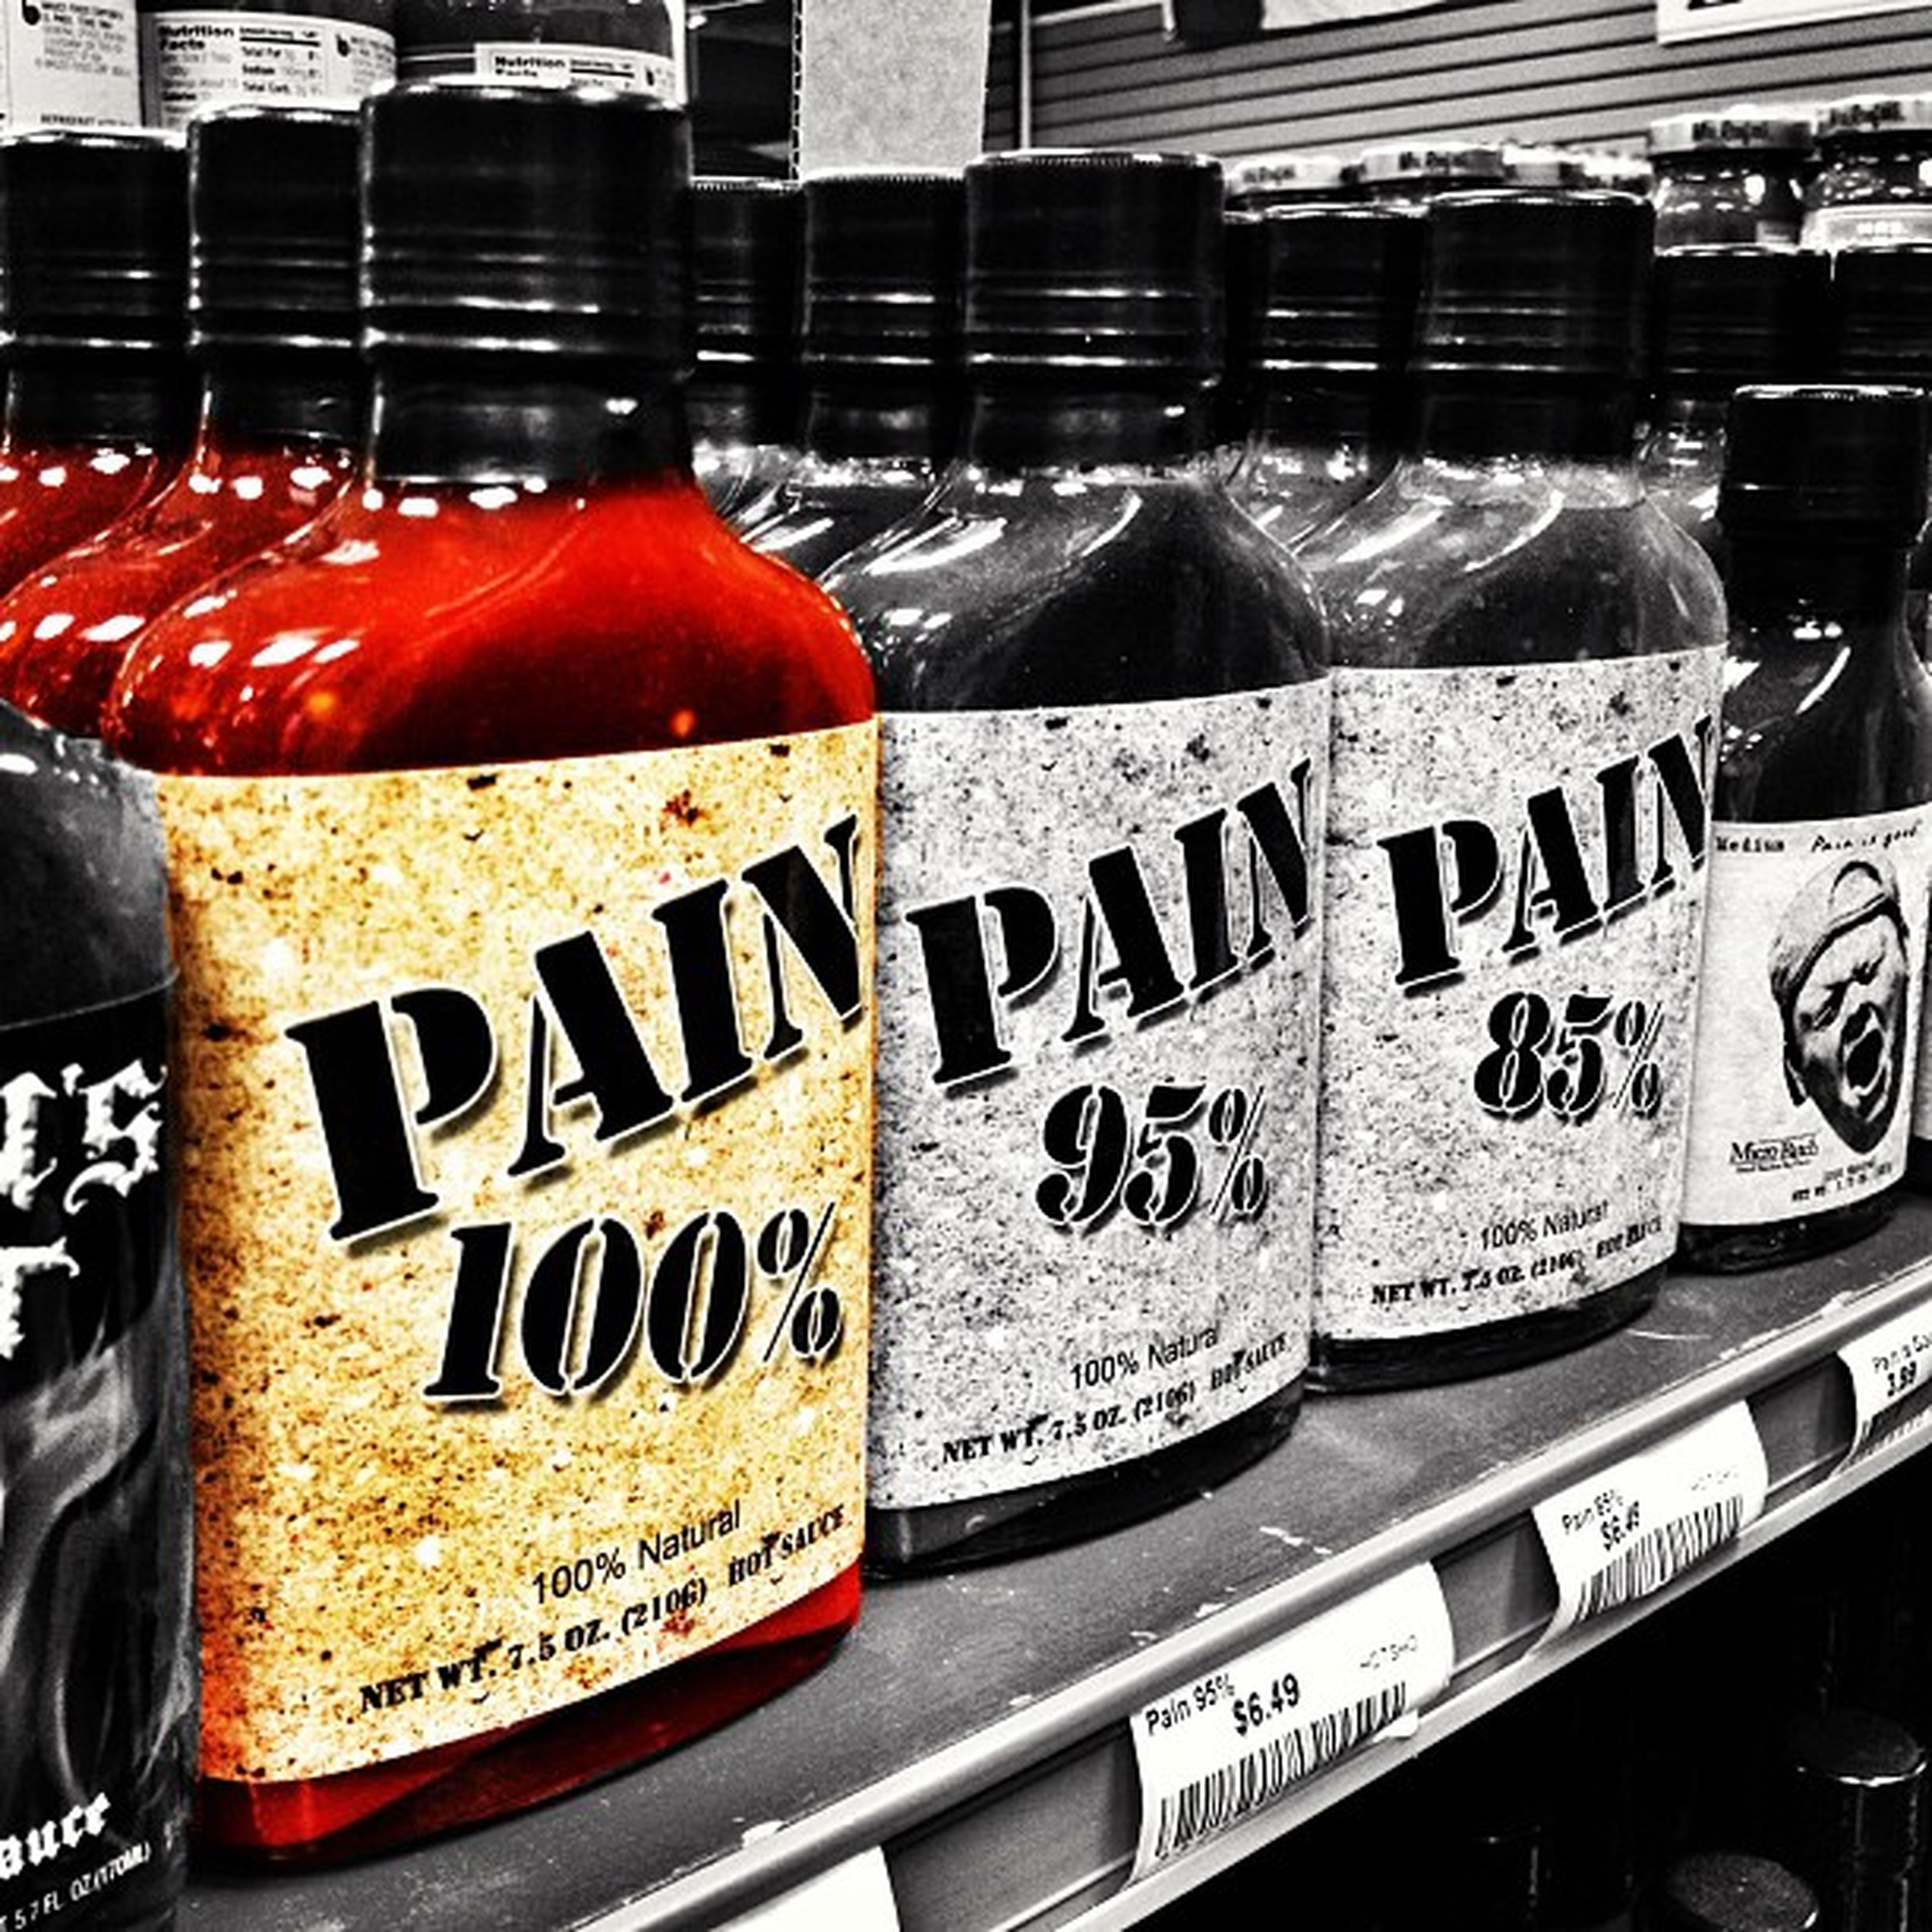 Pick Your Pain. 100% or Bust! 802 Instagramvt Igharjit Pain Vermontbyvermonters Iphoneonly Igvermont Photooftheday Captureeuphoria Ig_masterpiece Iphonesia Picoftheday Vermont All_shots IGDaily Instagramhub Hotsauce Igworldclub Insta_america